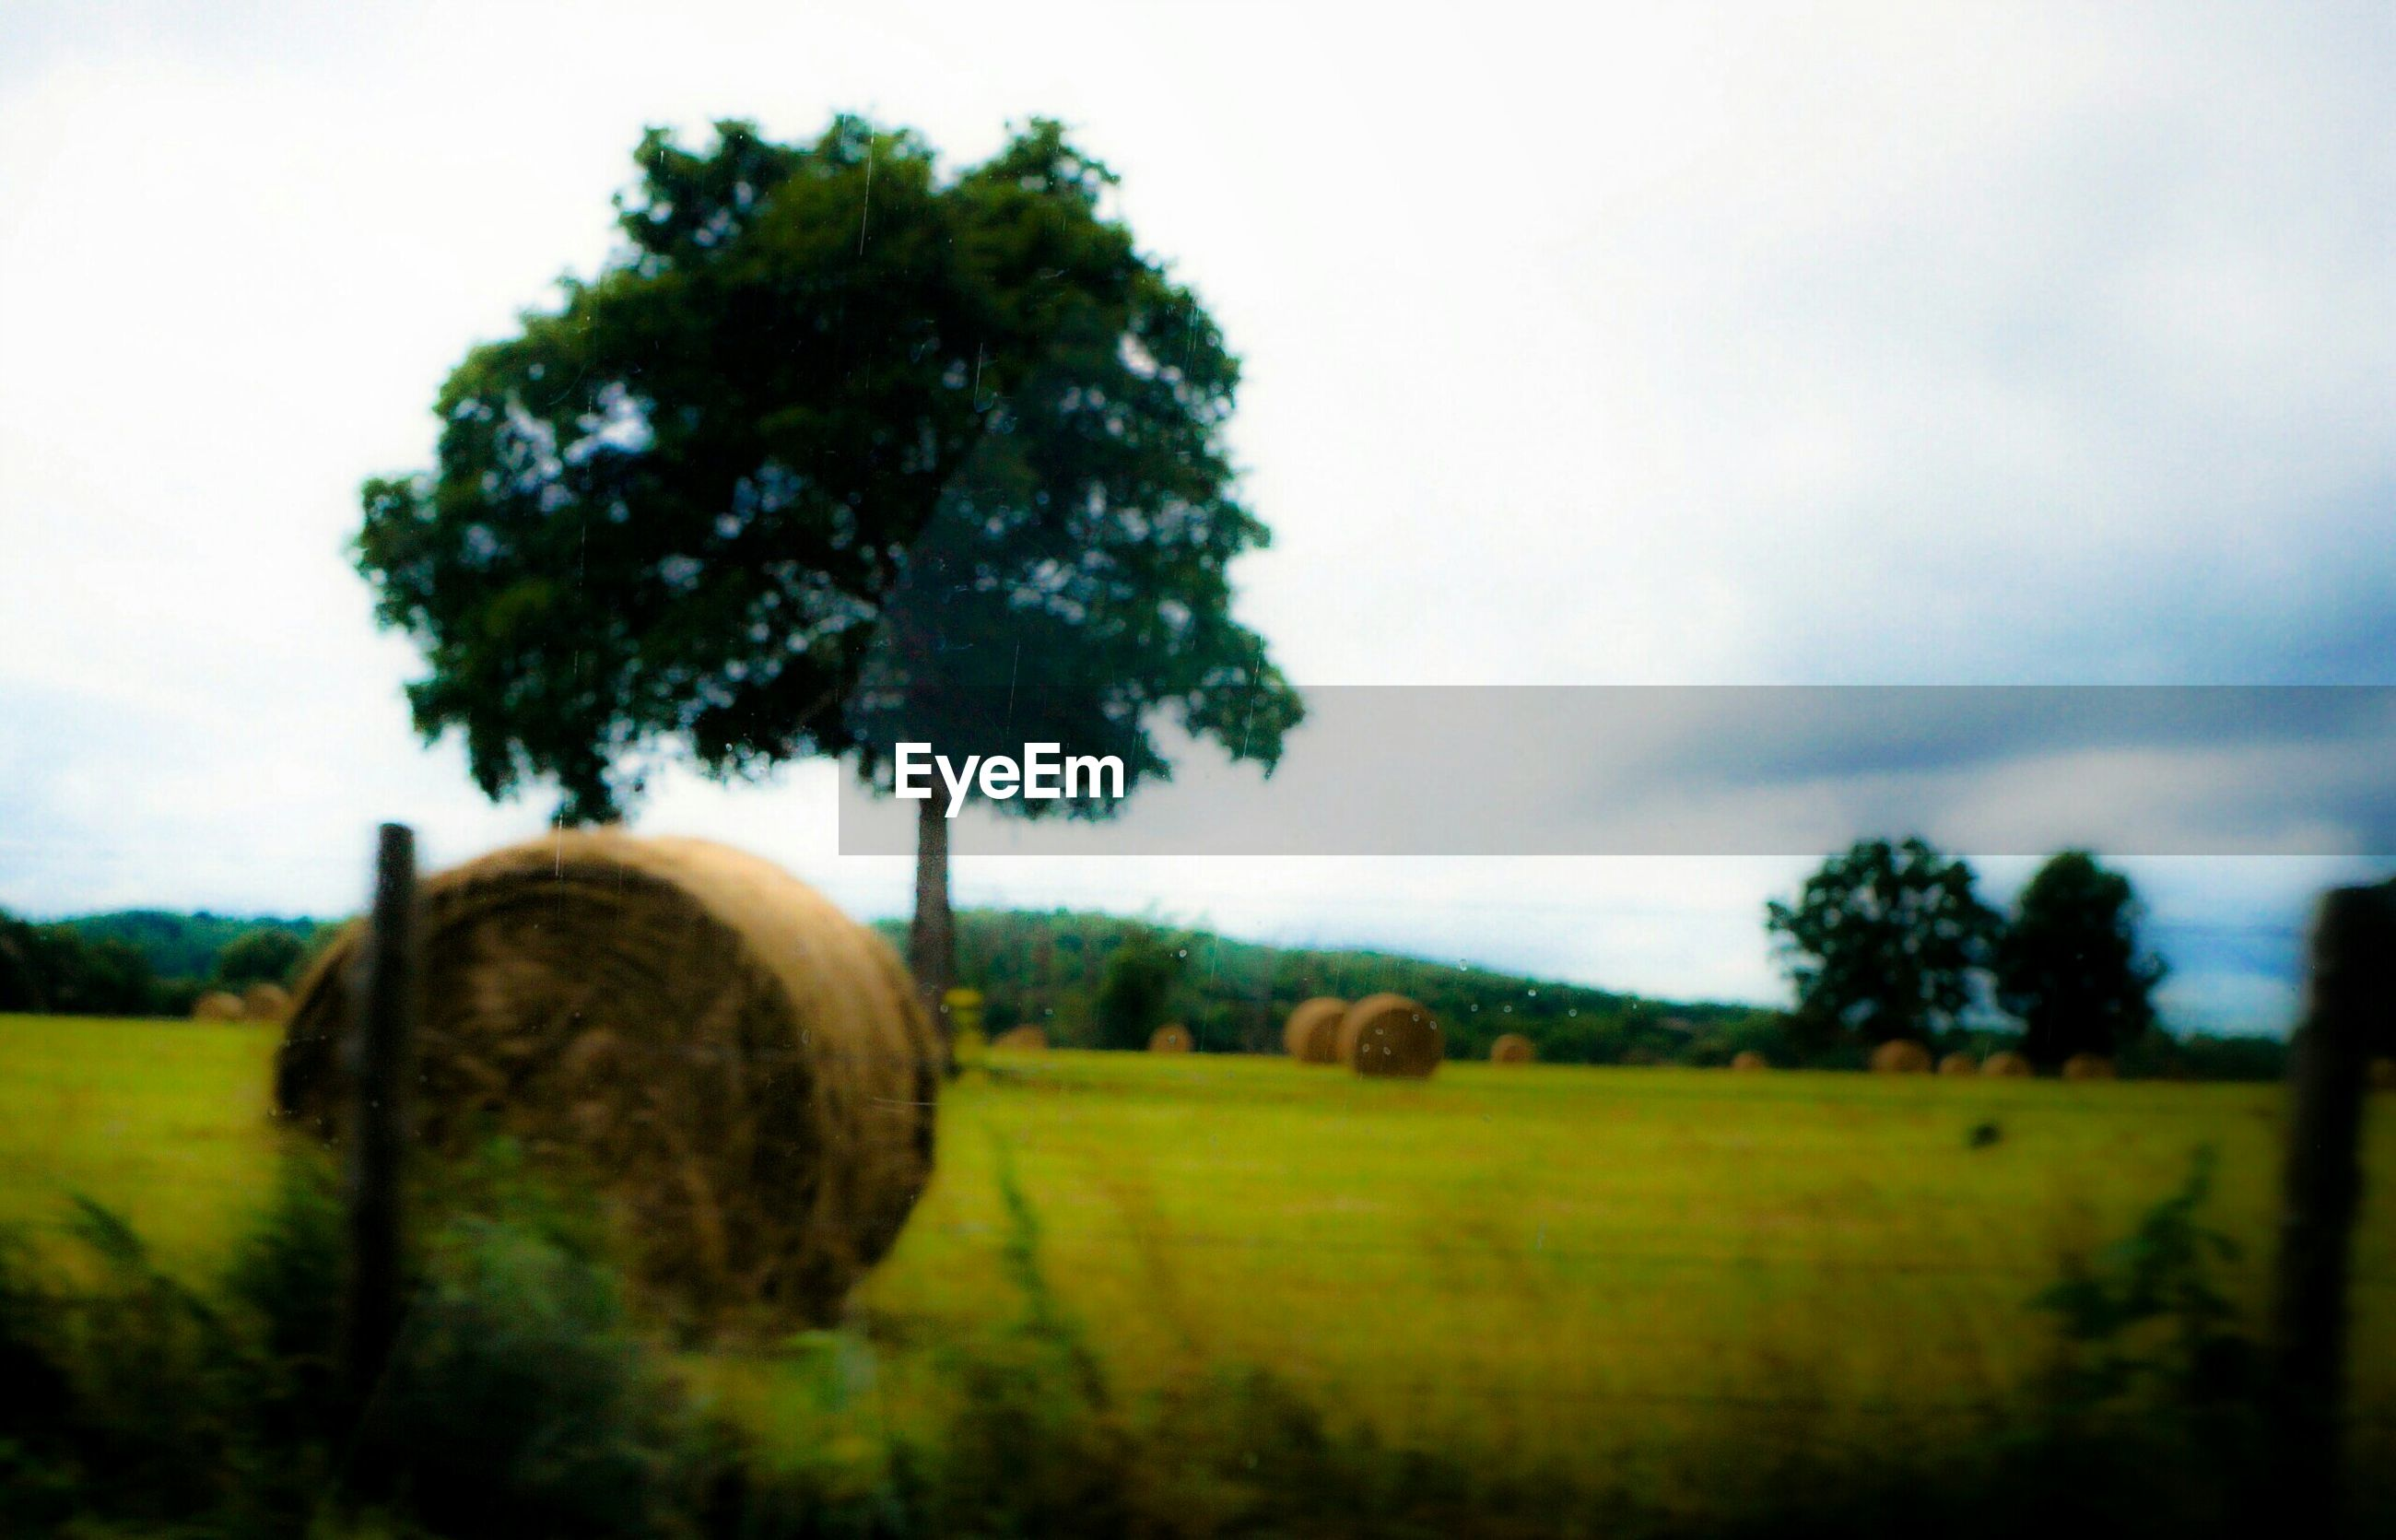 bale, field, agriculture, tree, hay bale, landscape, farm, hay, rolled up, grass, nature, tranquility, rural scene, beauty in nature, tranquil scene, no people, sky, scenics, growth, day, outdoors